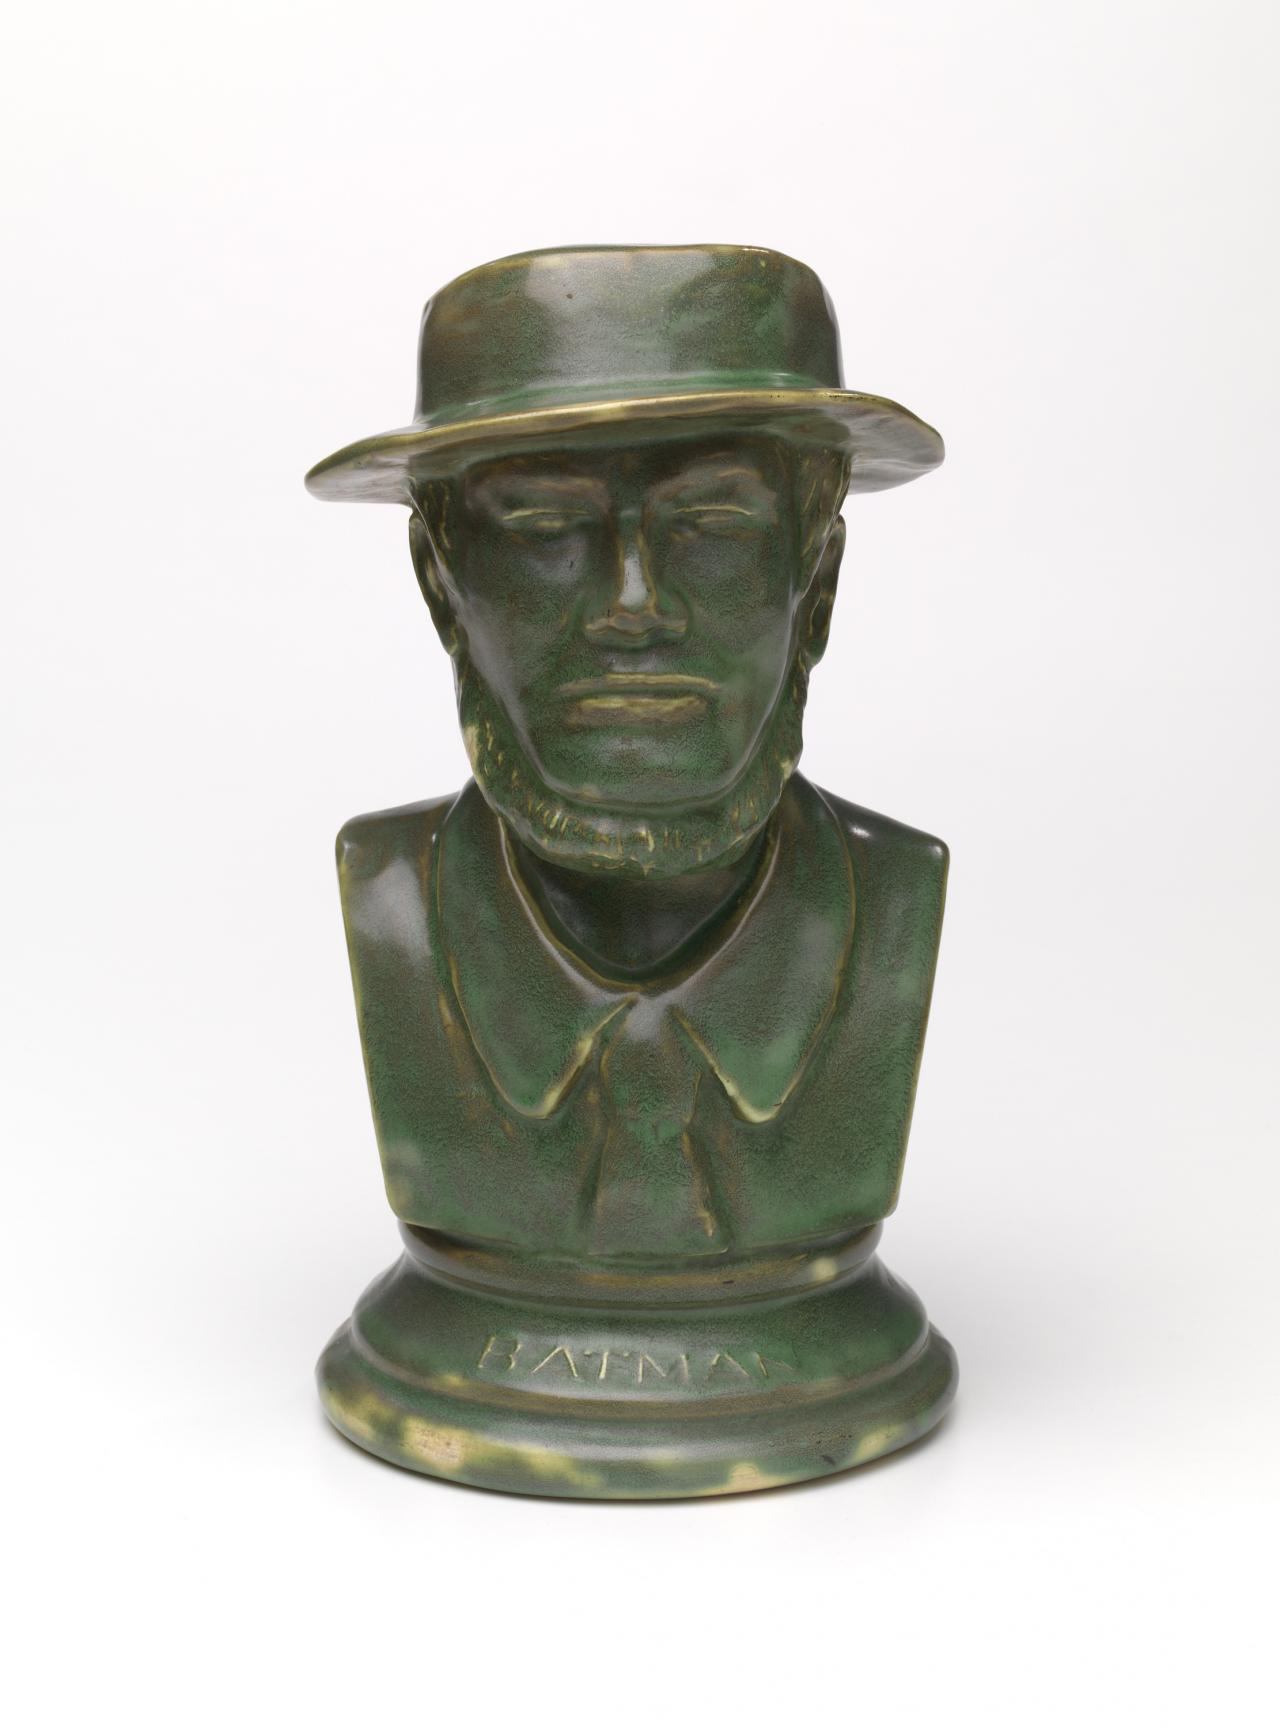 Bust of John Batman